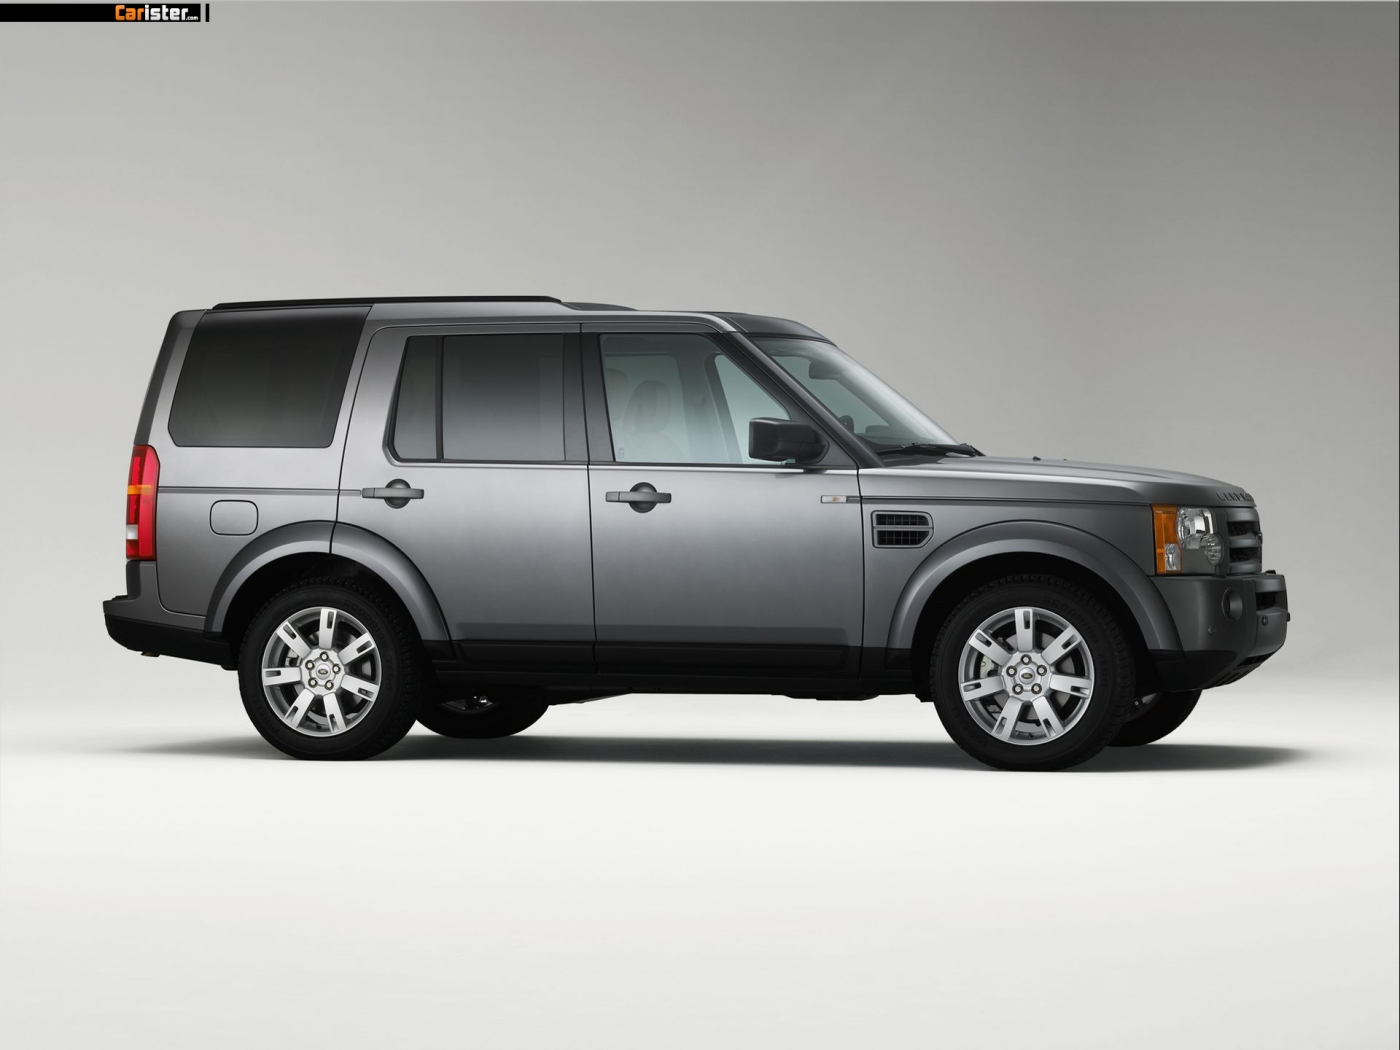 Land Rover Discovery 3 2009 - Photo 16 - Taille: 1400x1050